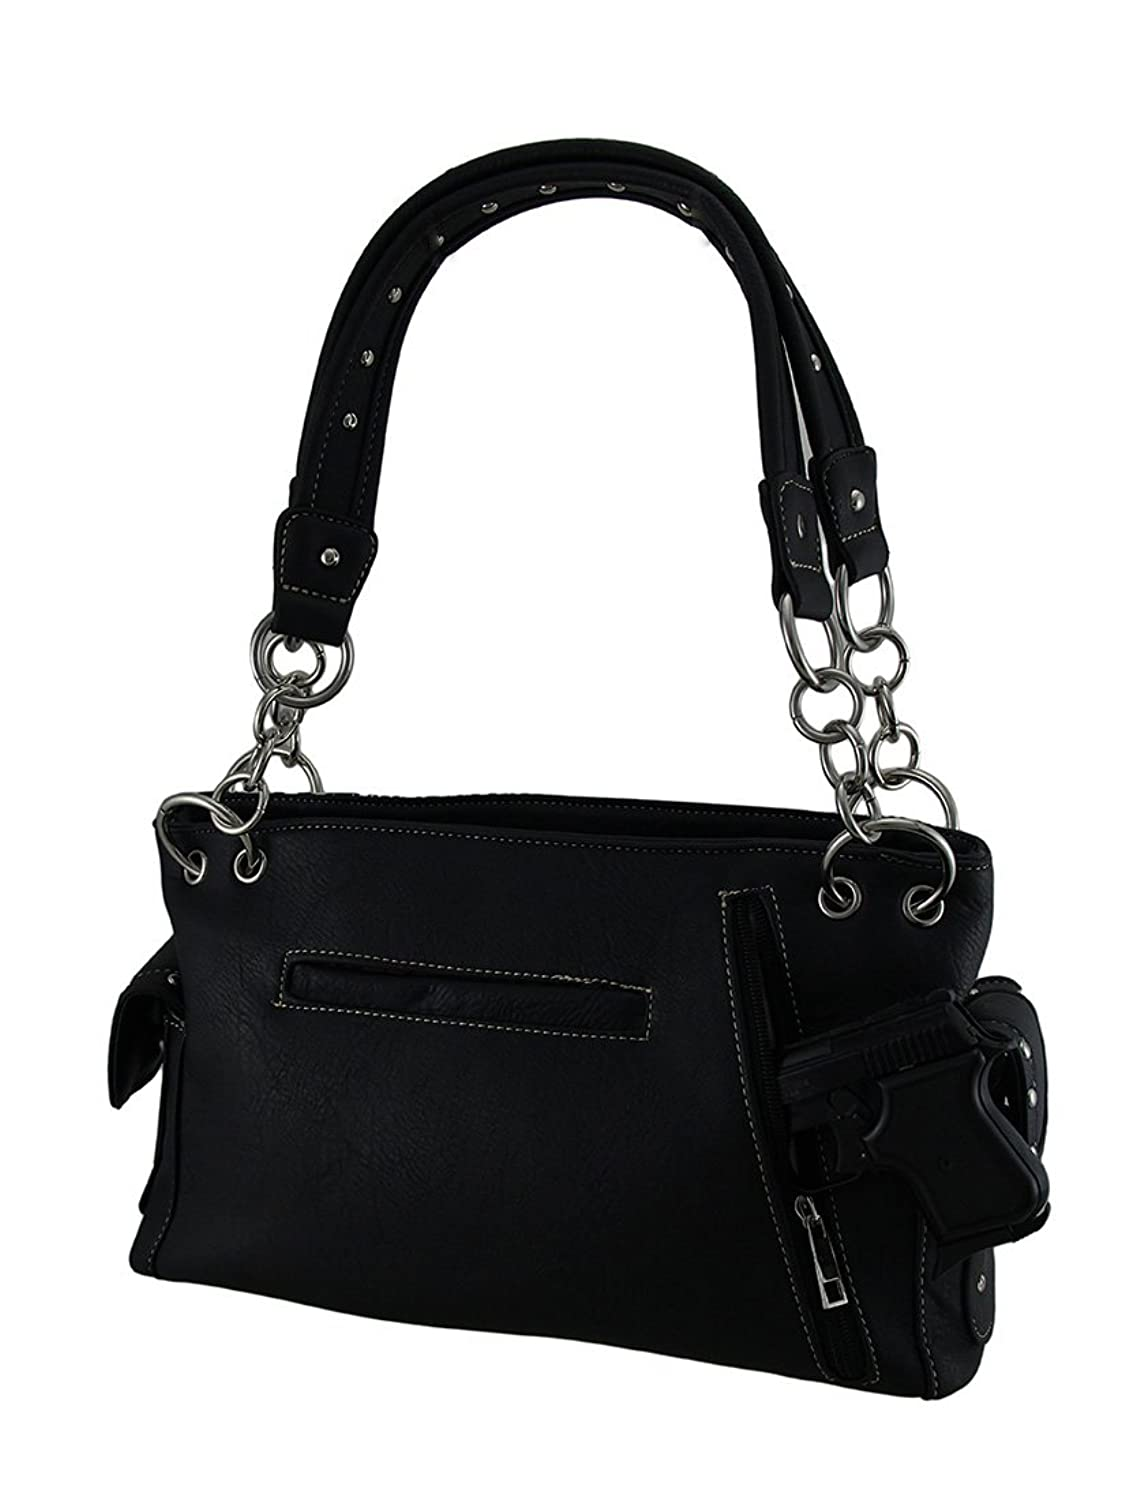 Rhinestone Skull and Bones Lace Look Concealed Carry Handbag